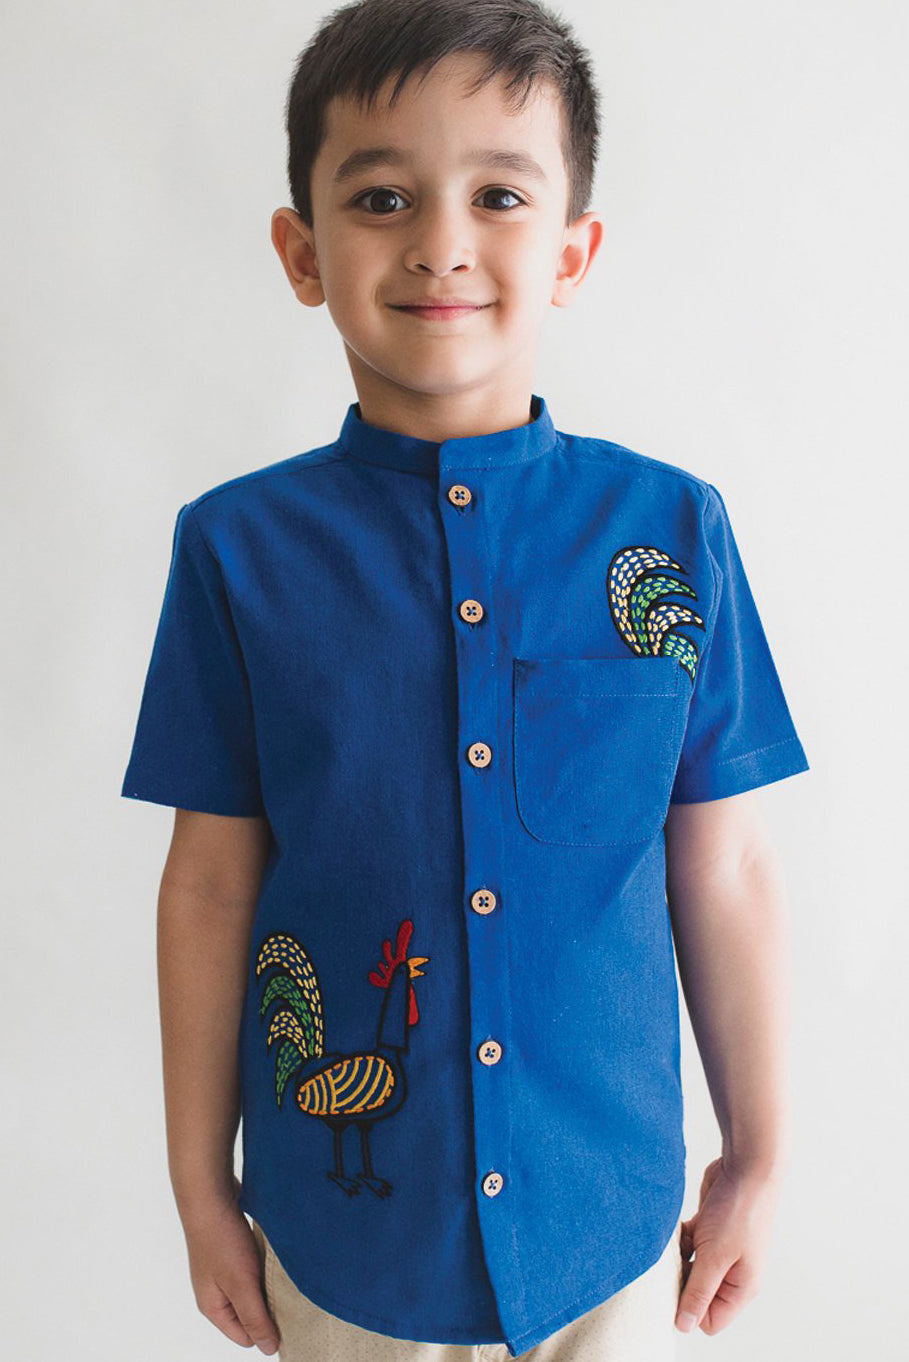 Boy Blue Rooster Shirt